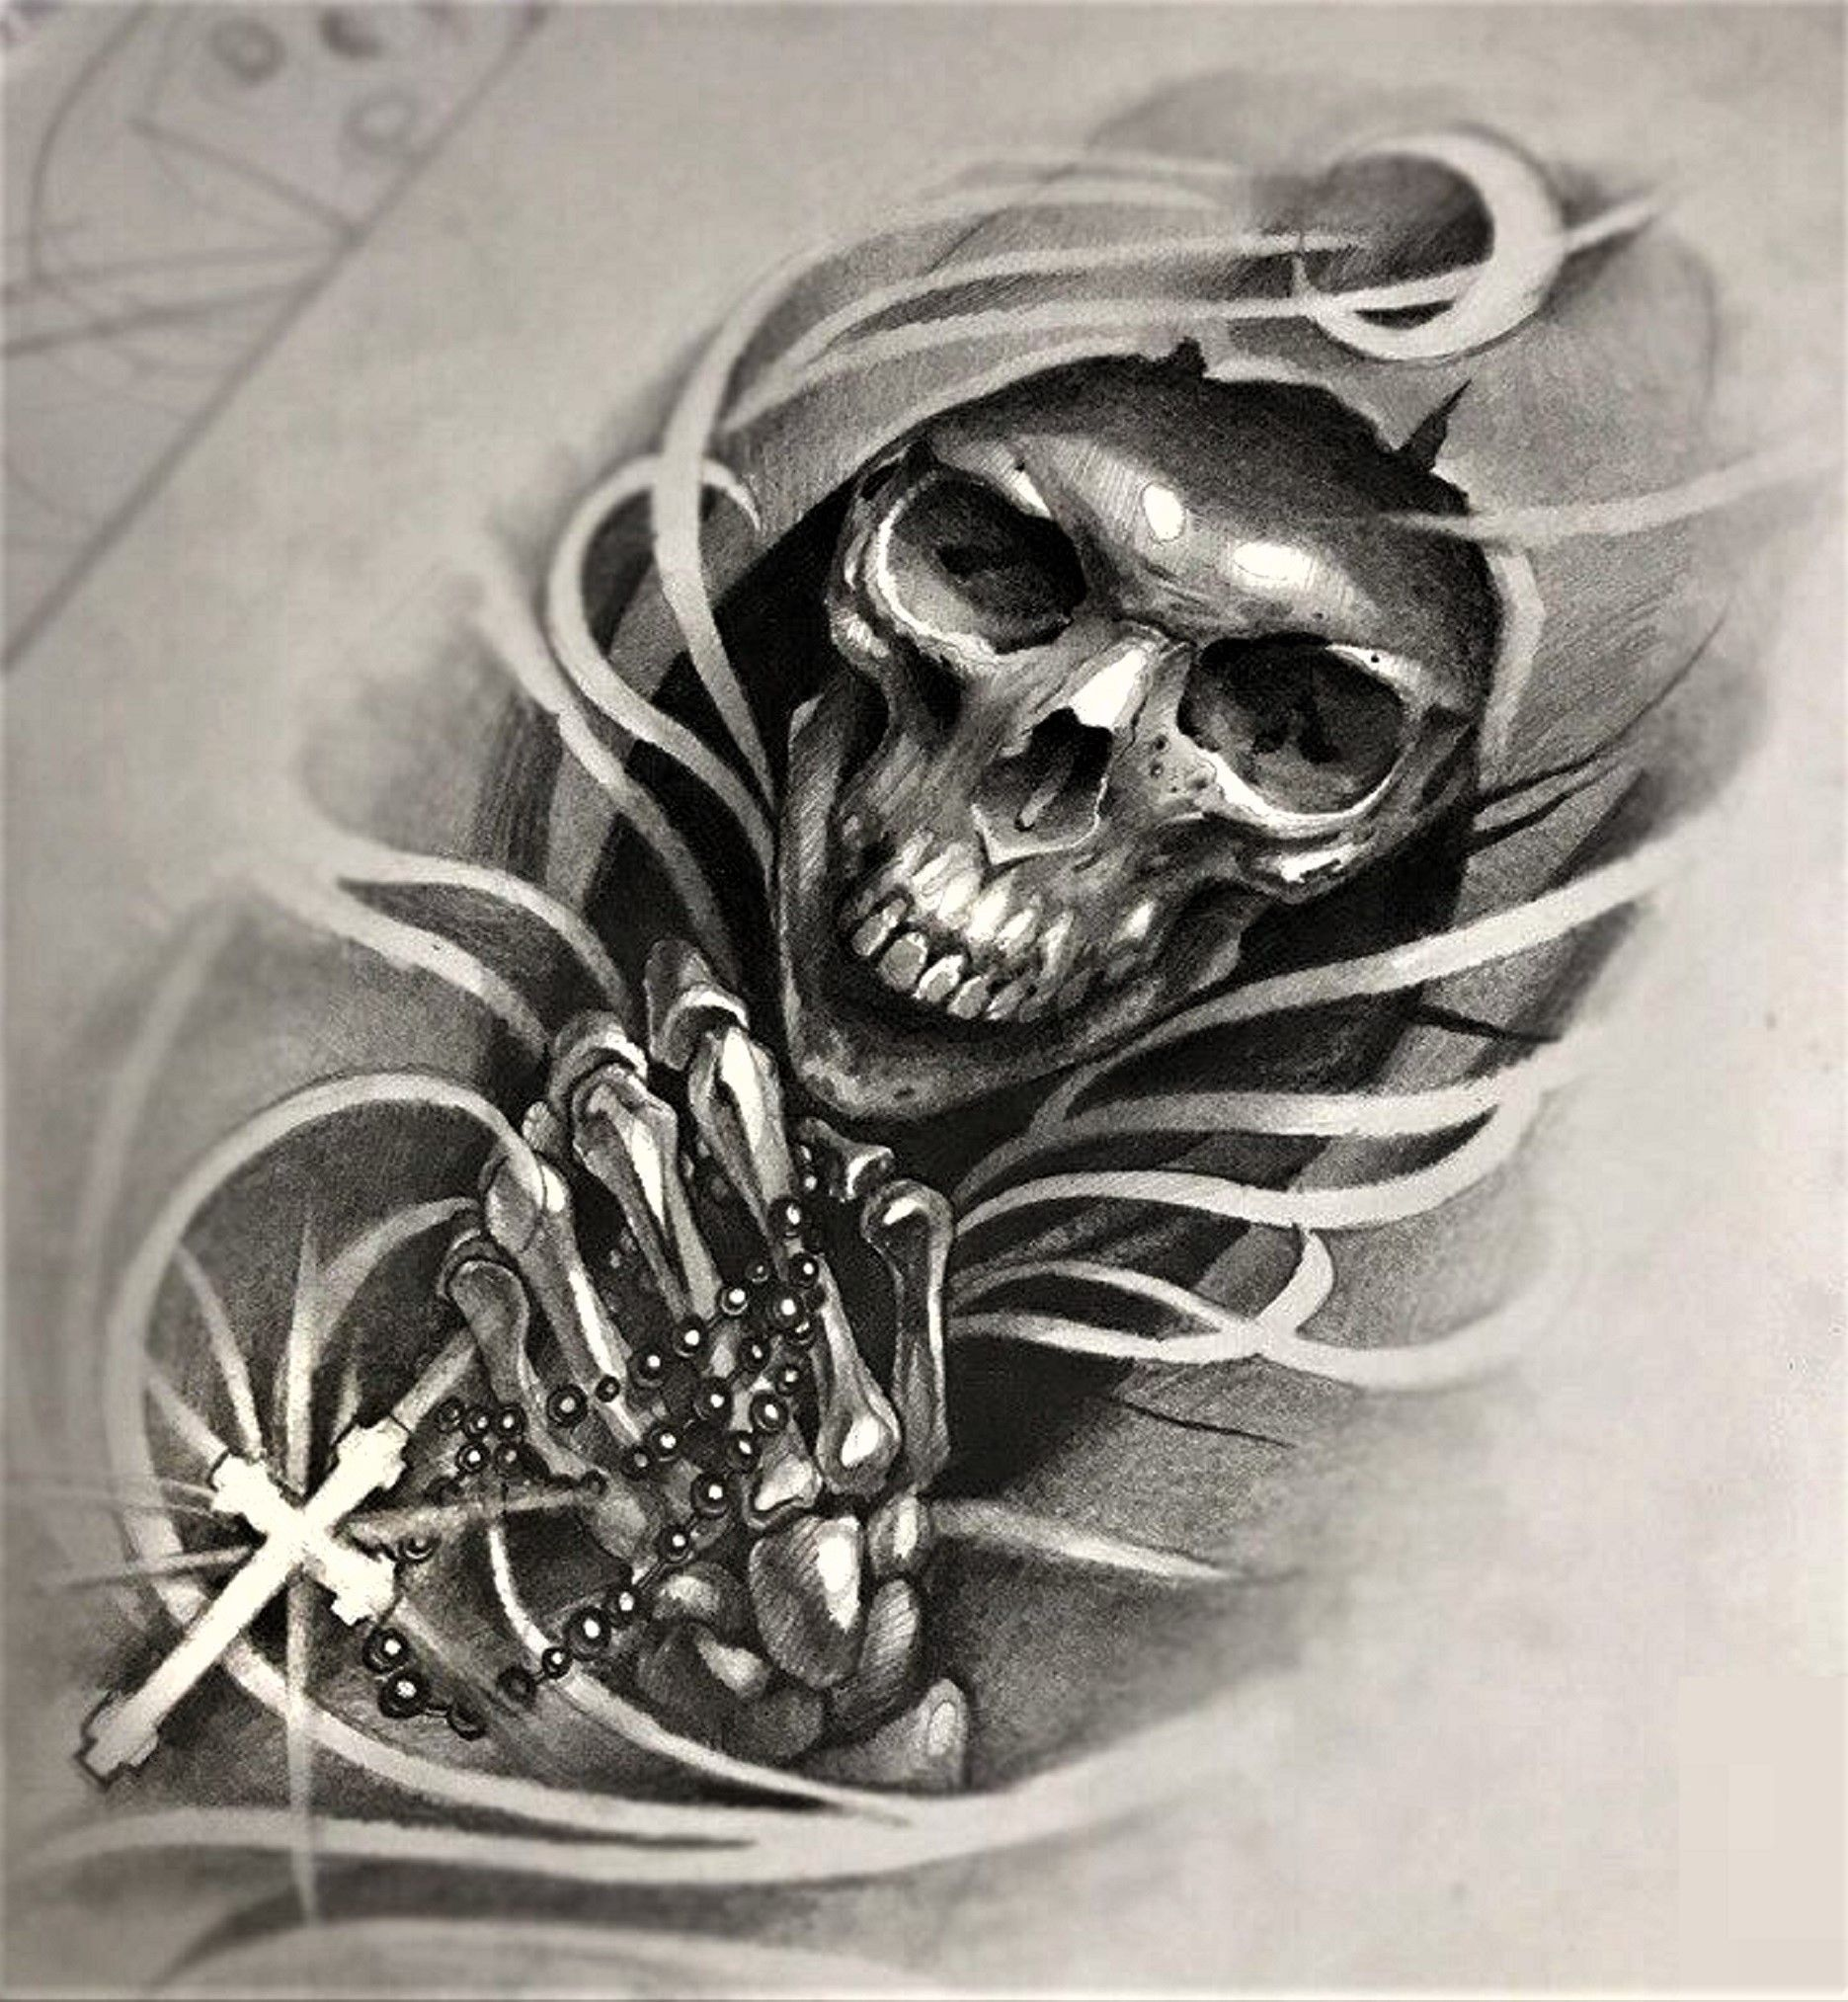 54939002994e5 The Grim Reaper with Rosary Beads